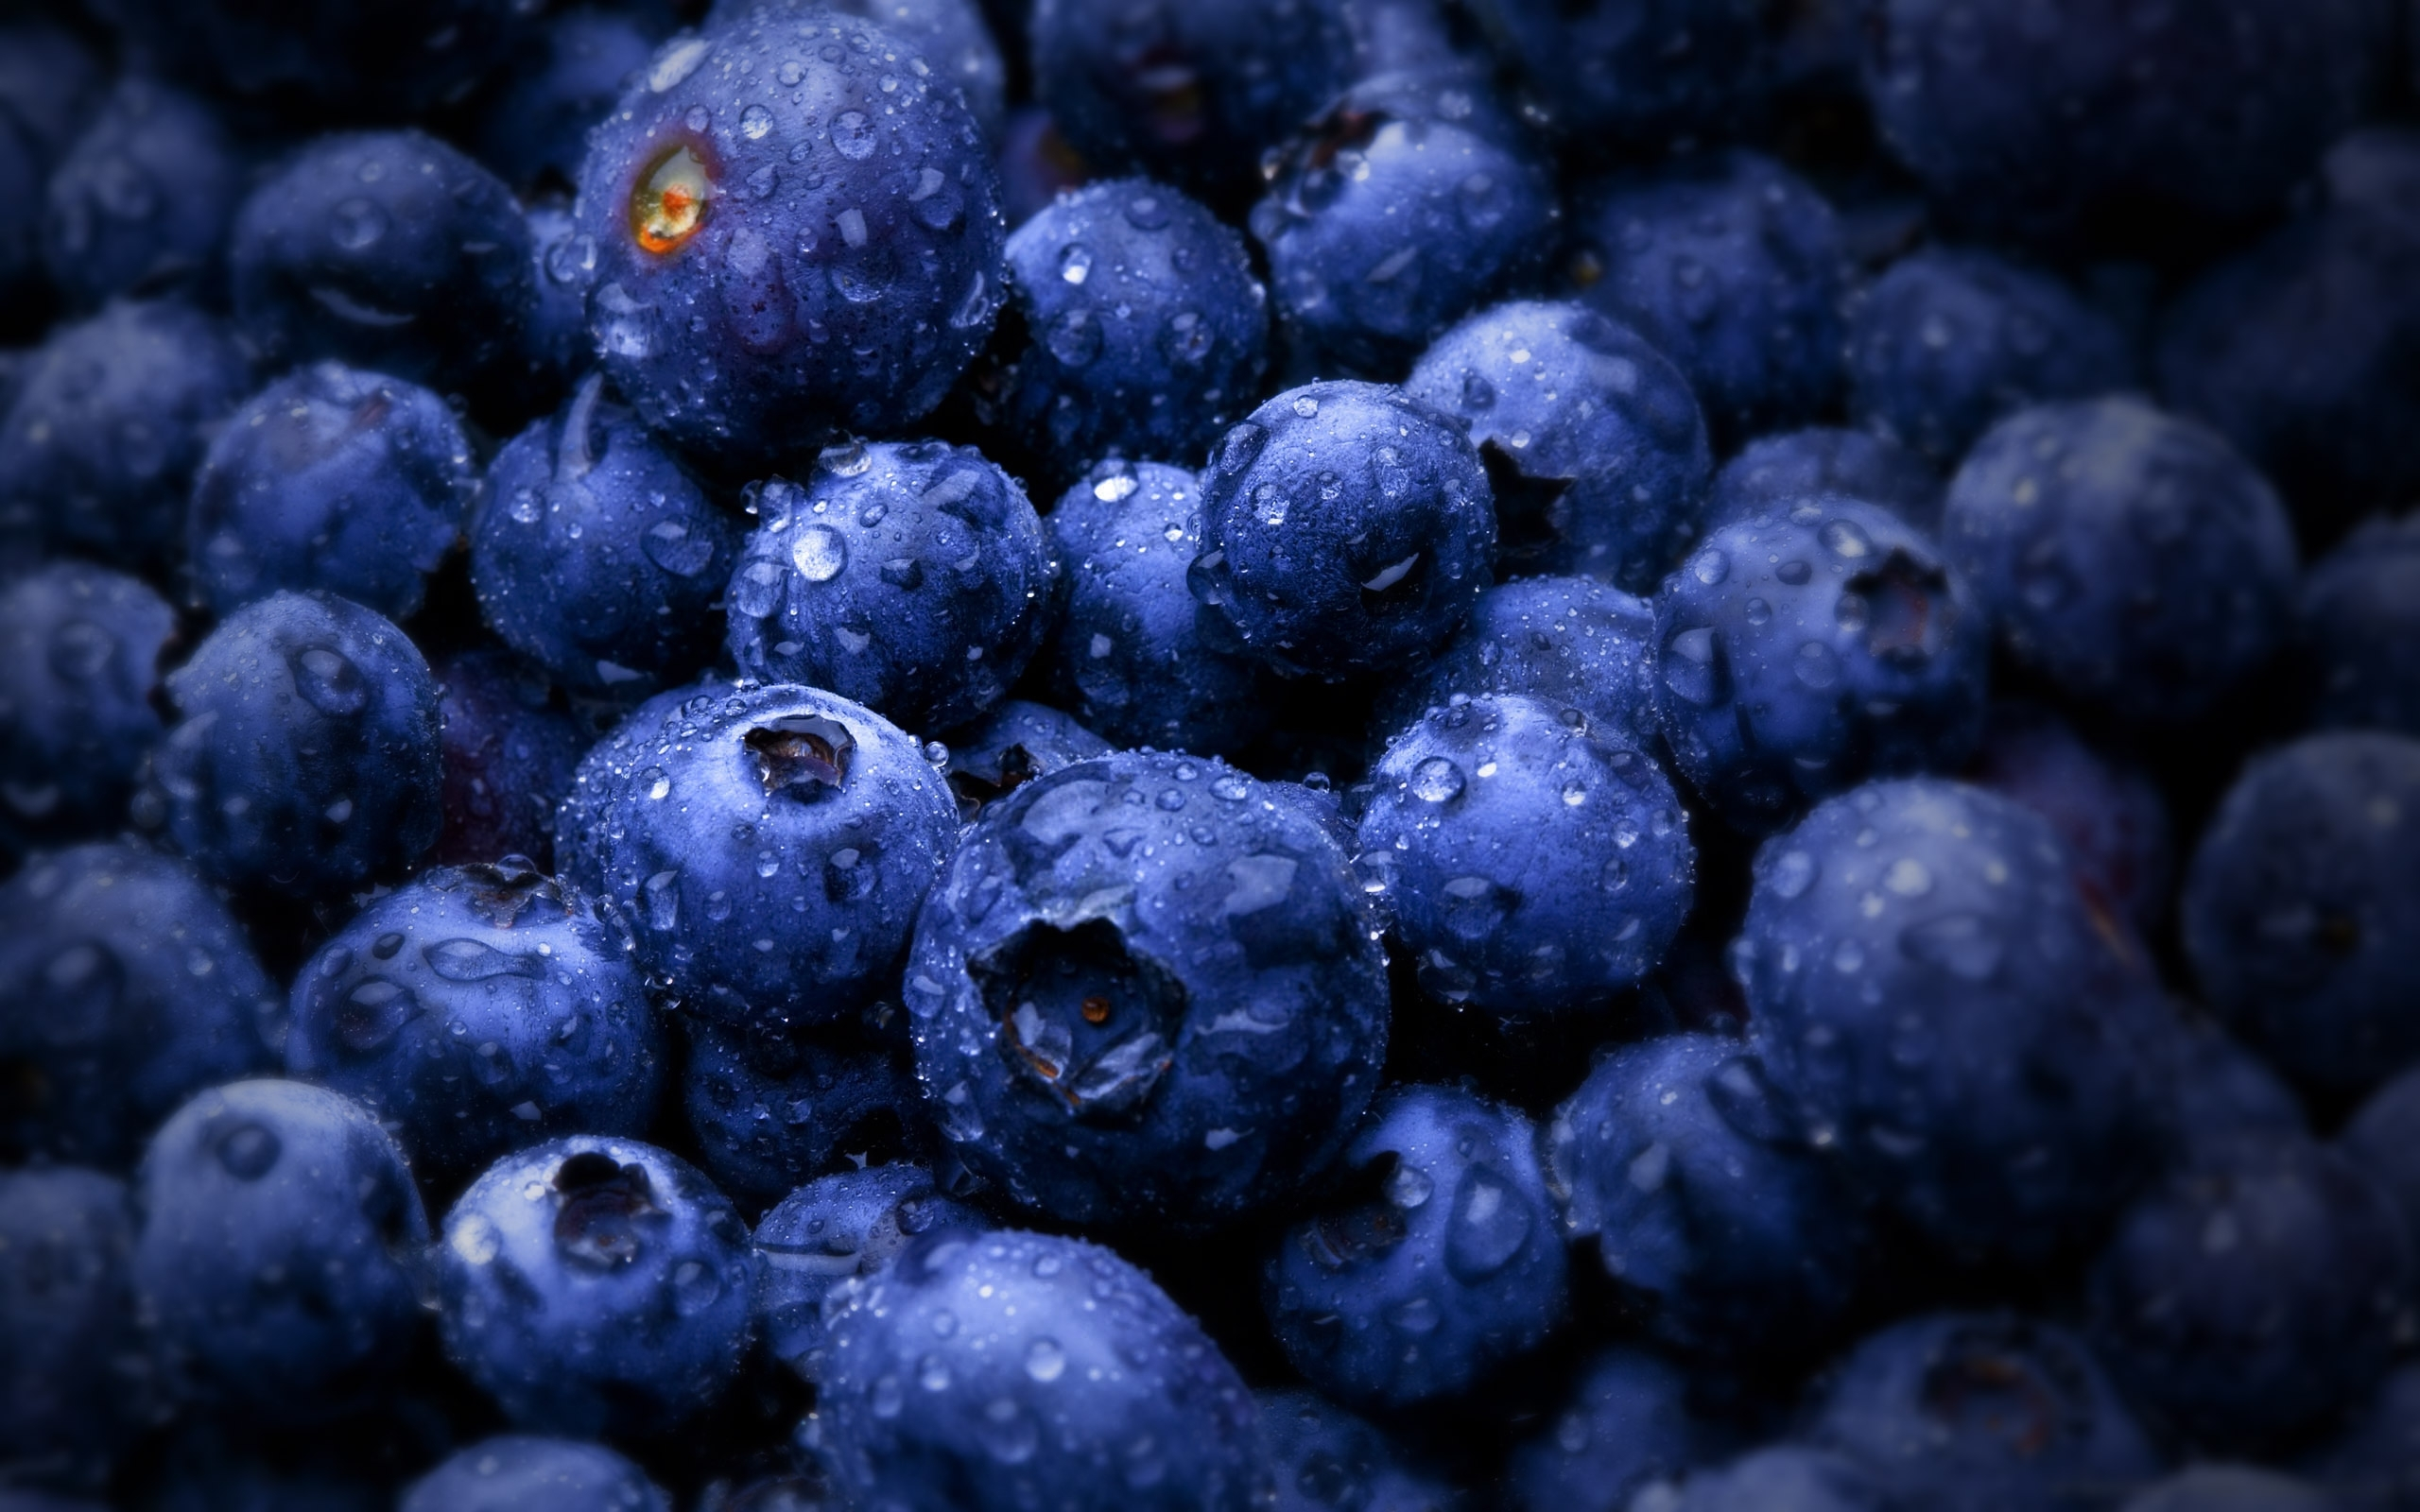 25809 download wallpaper Food, Bilberries, Berries screensavers and pictures for free